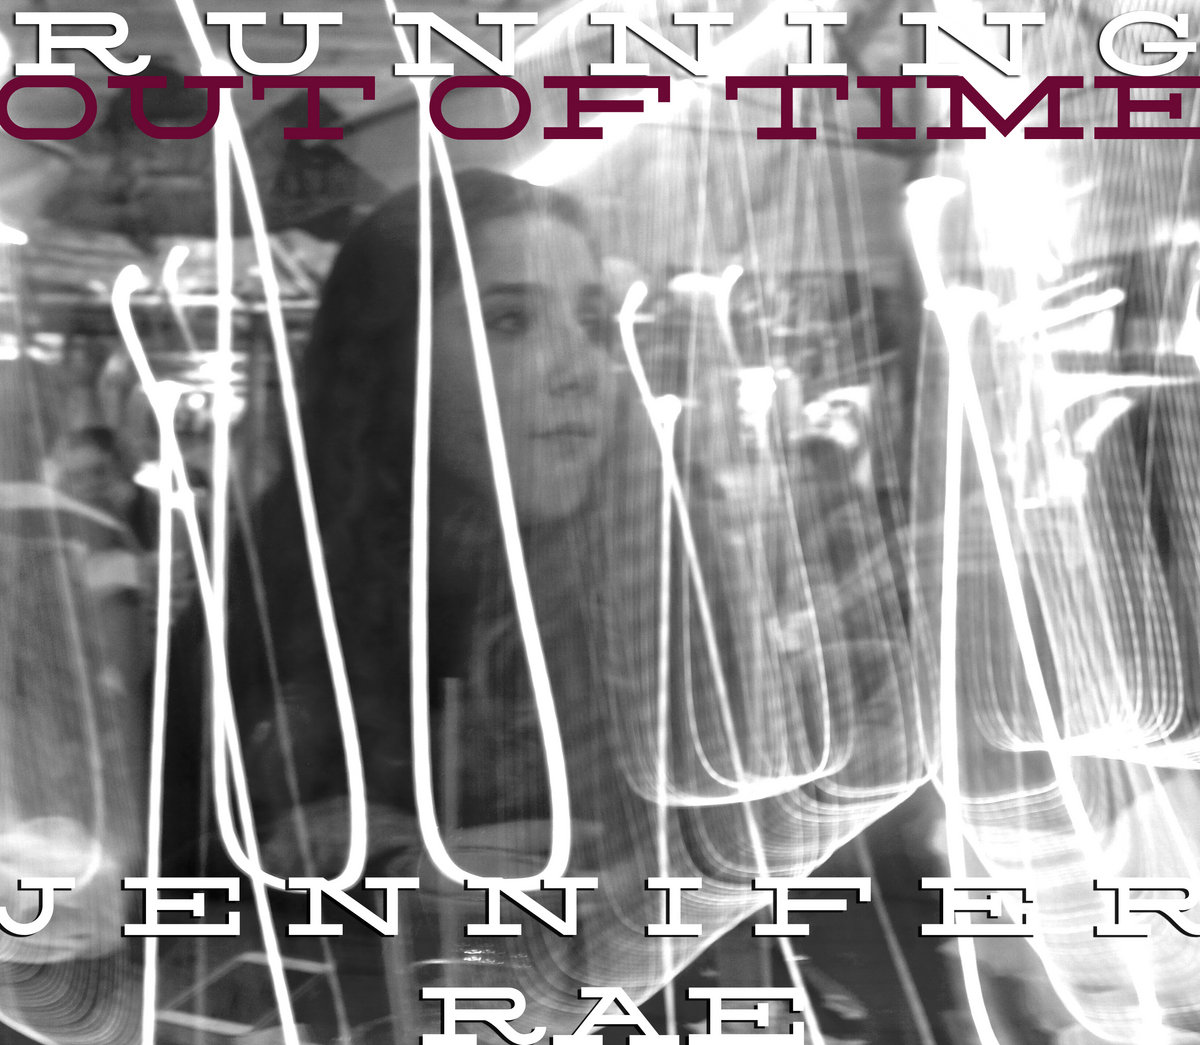 Running Out of Time by Jennifer Rae